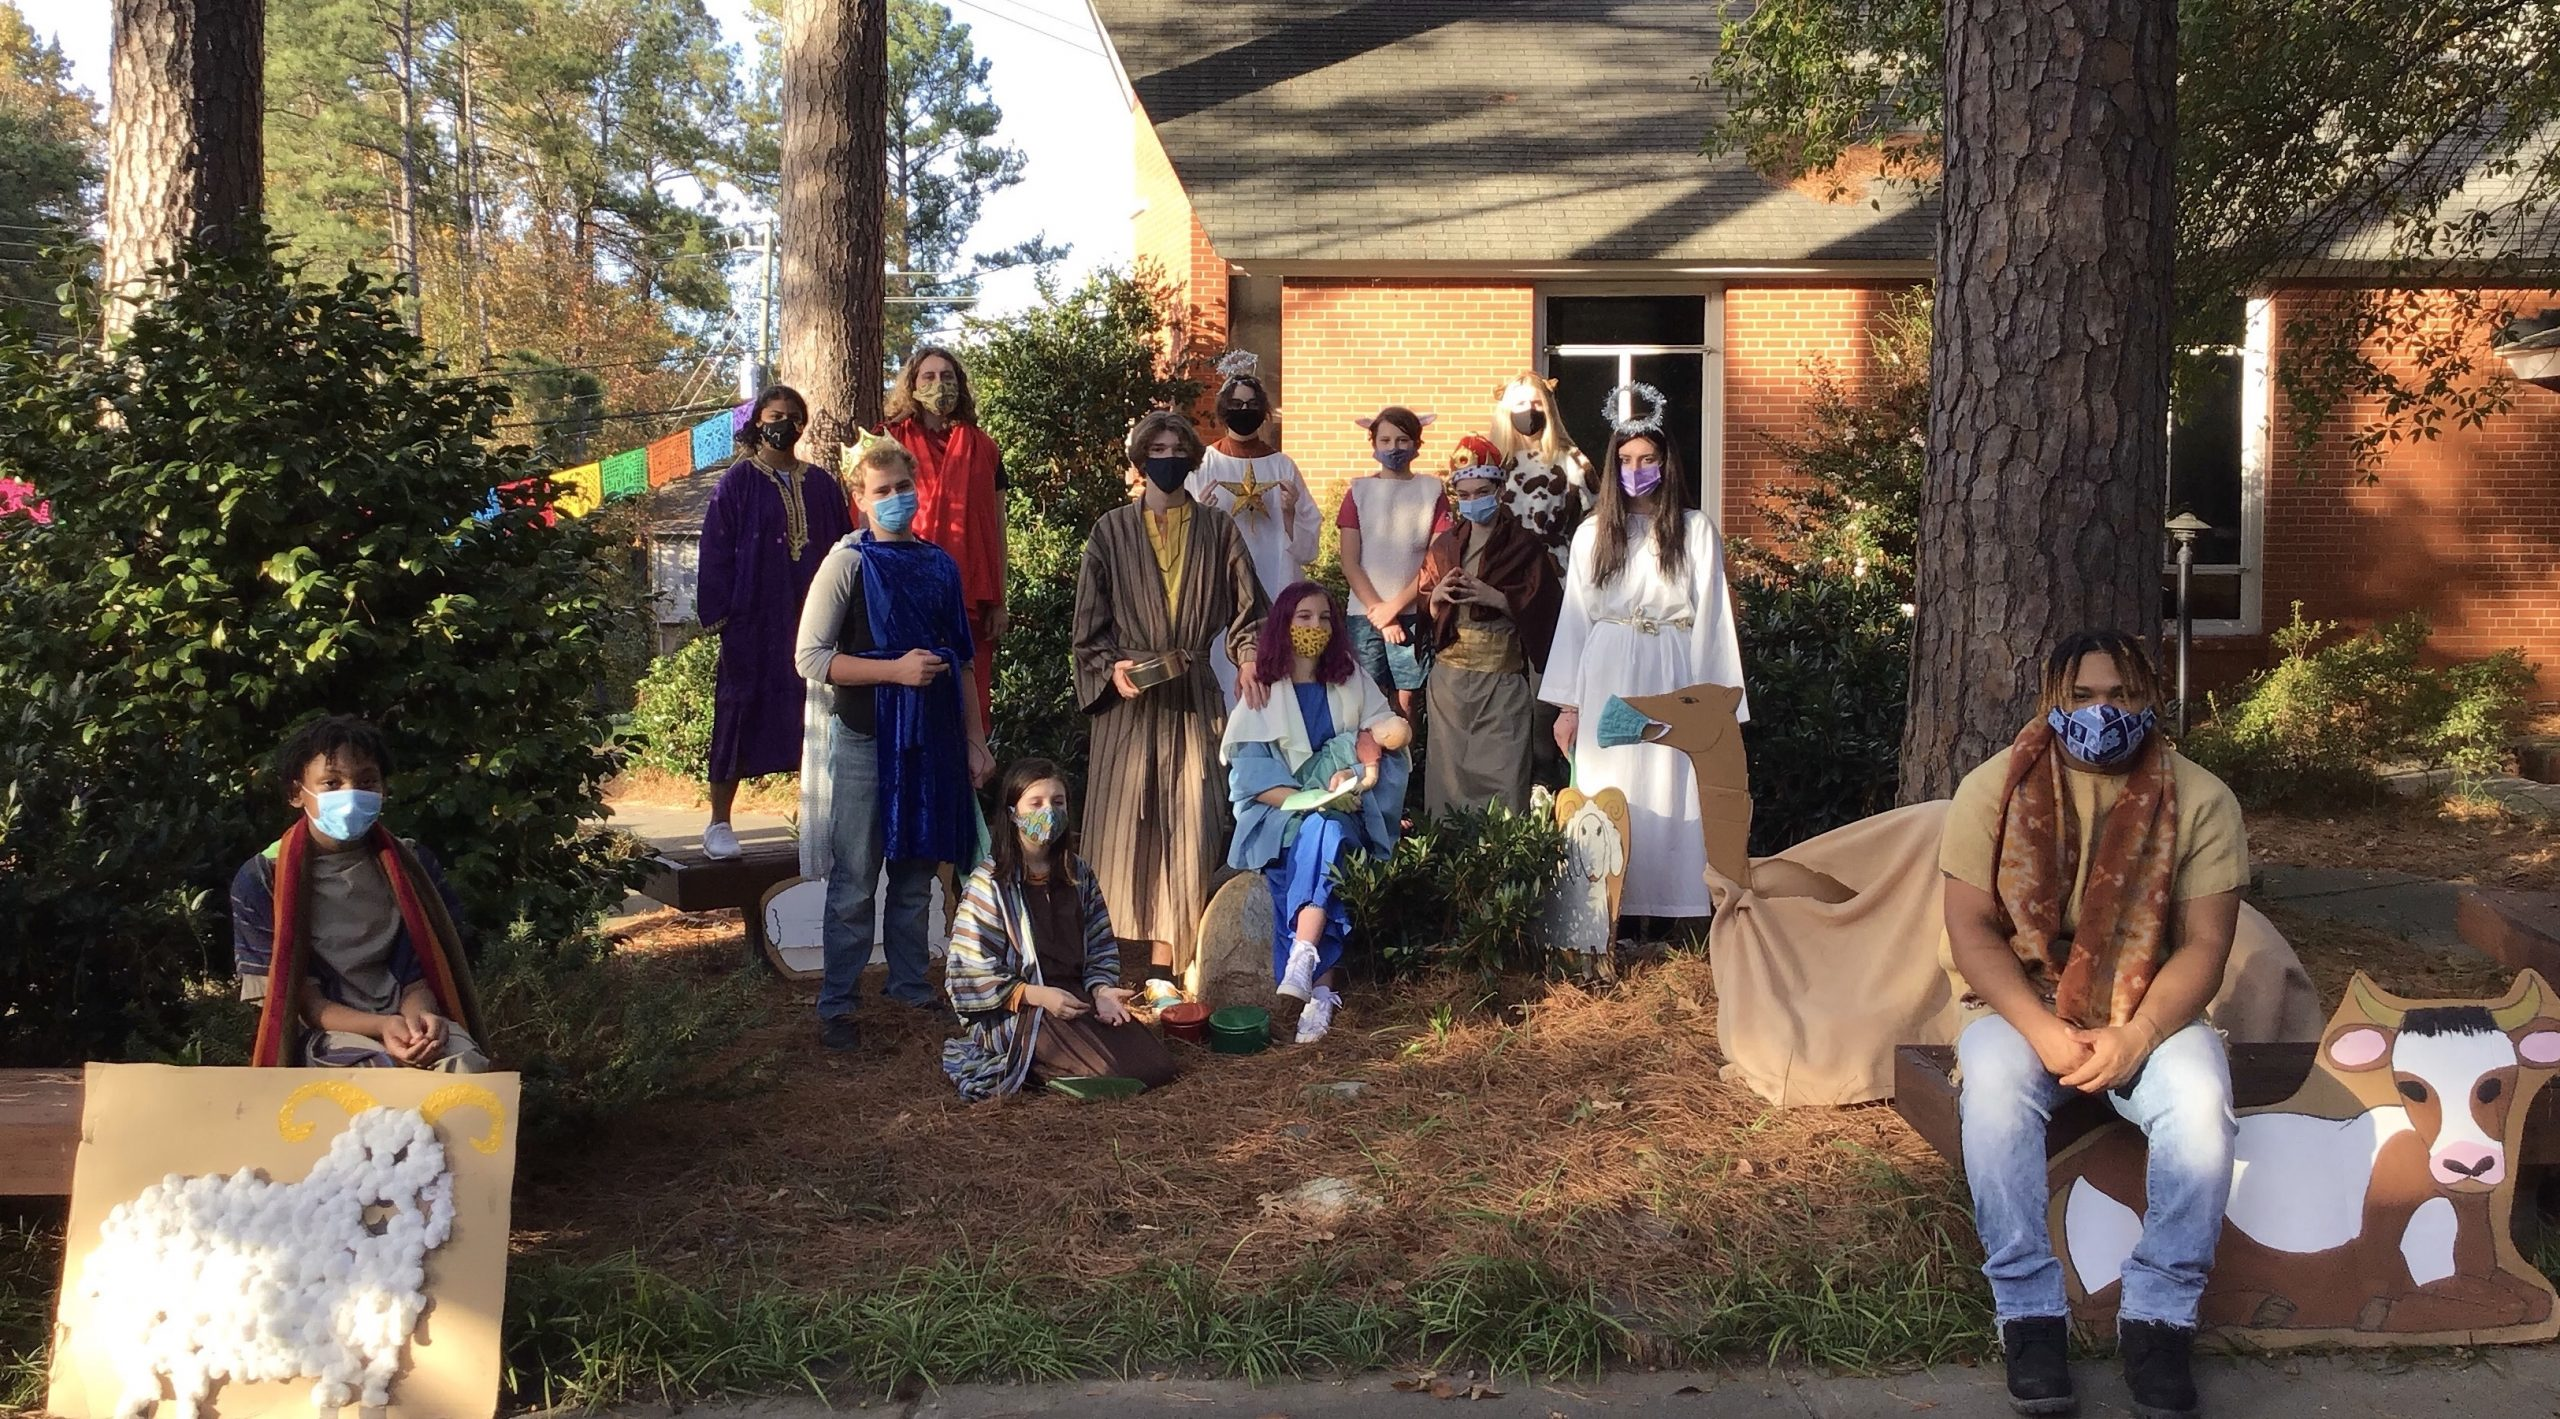 Youth in the courtyard in costume for the Christmas pageant